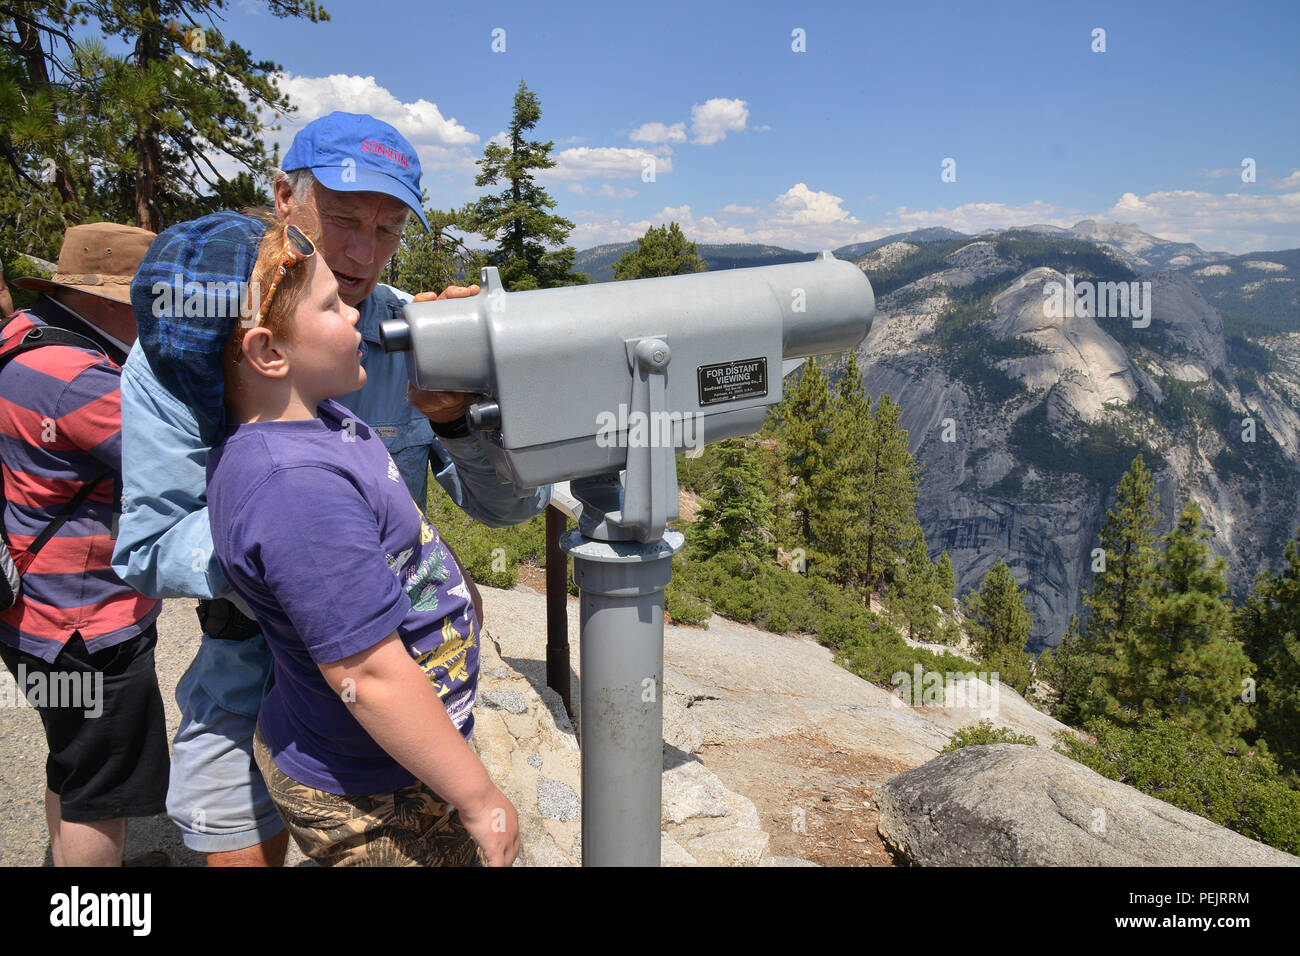 A tourist takes a closer look at Half Dome in the Yosemite National Park, California, USA - Stock Image